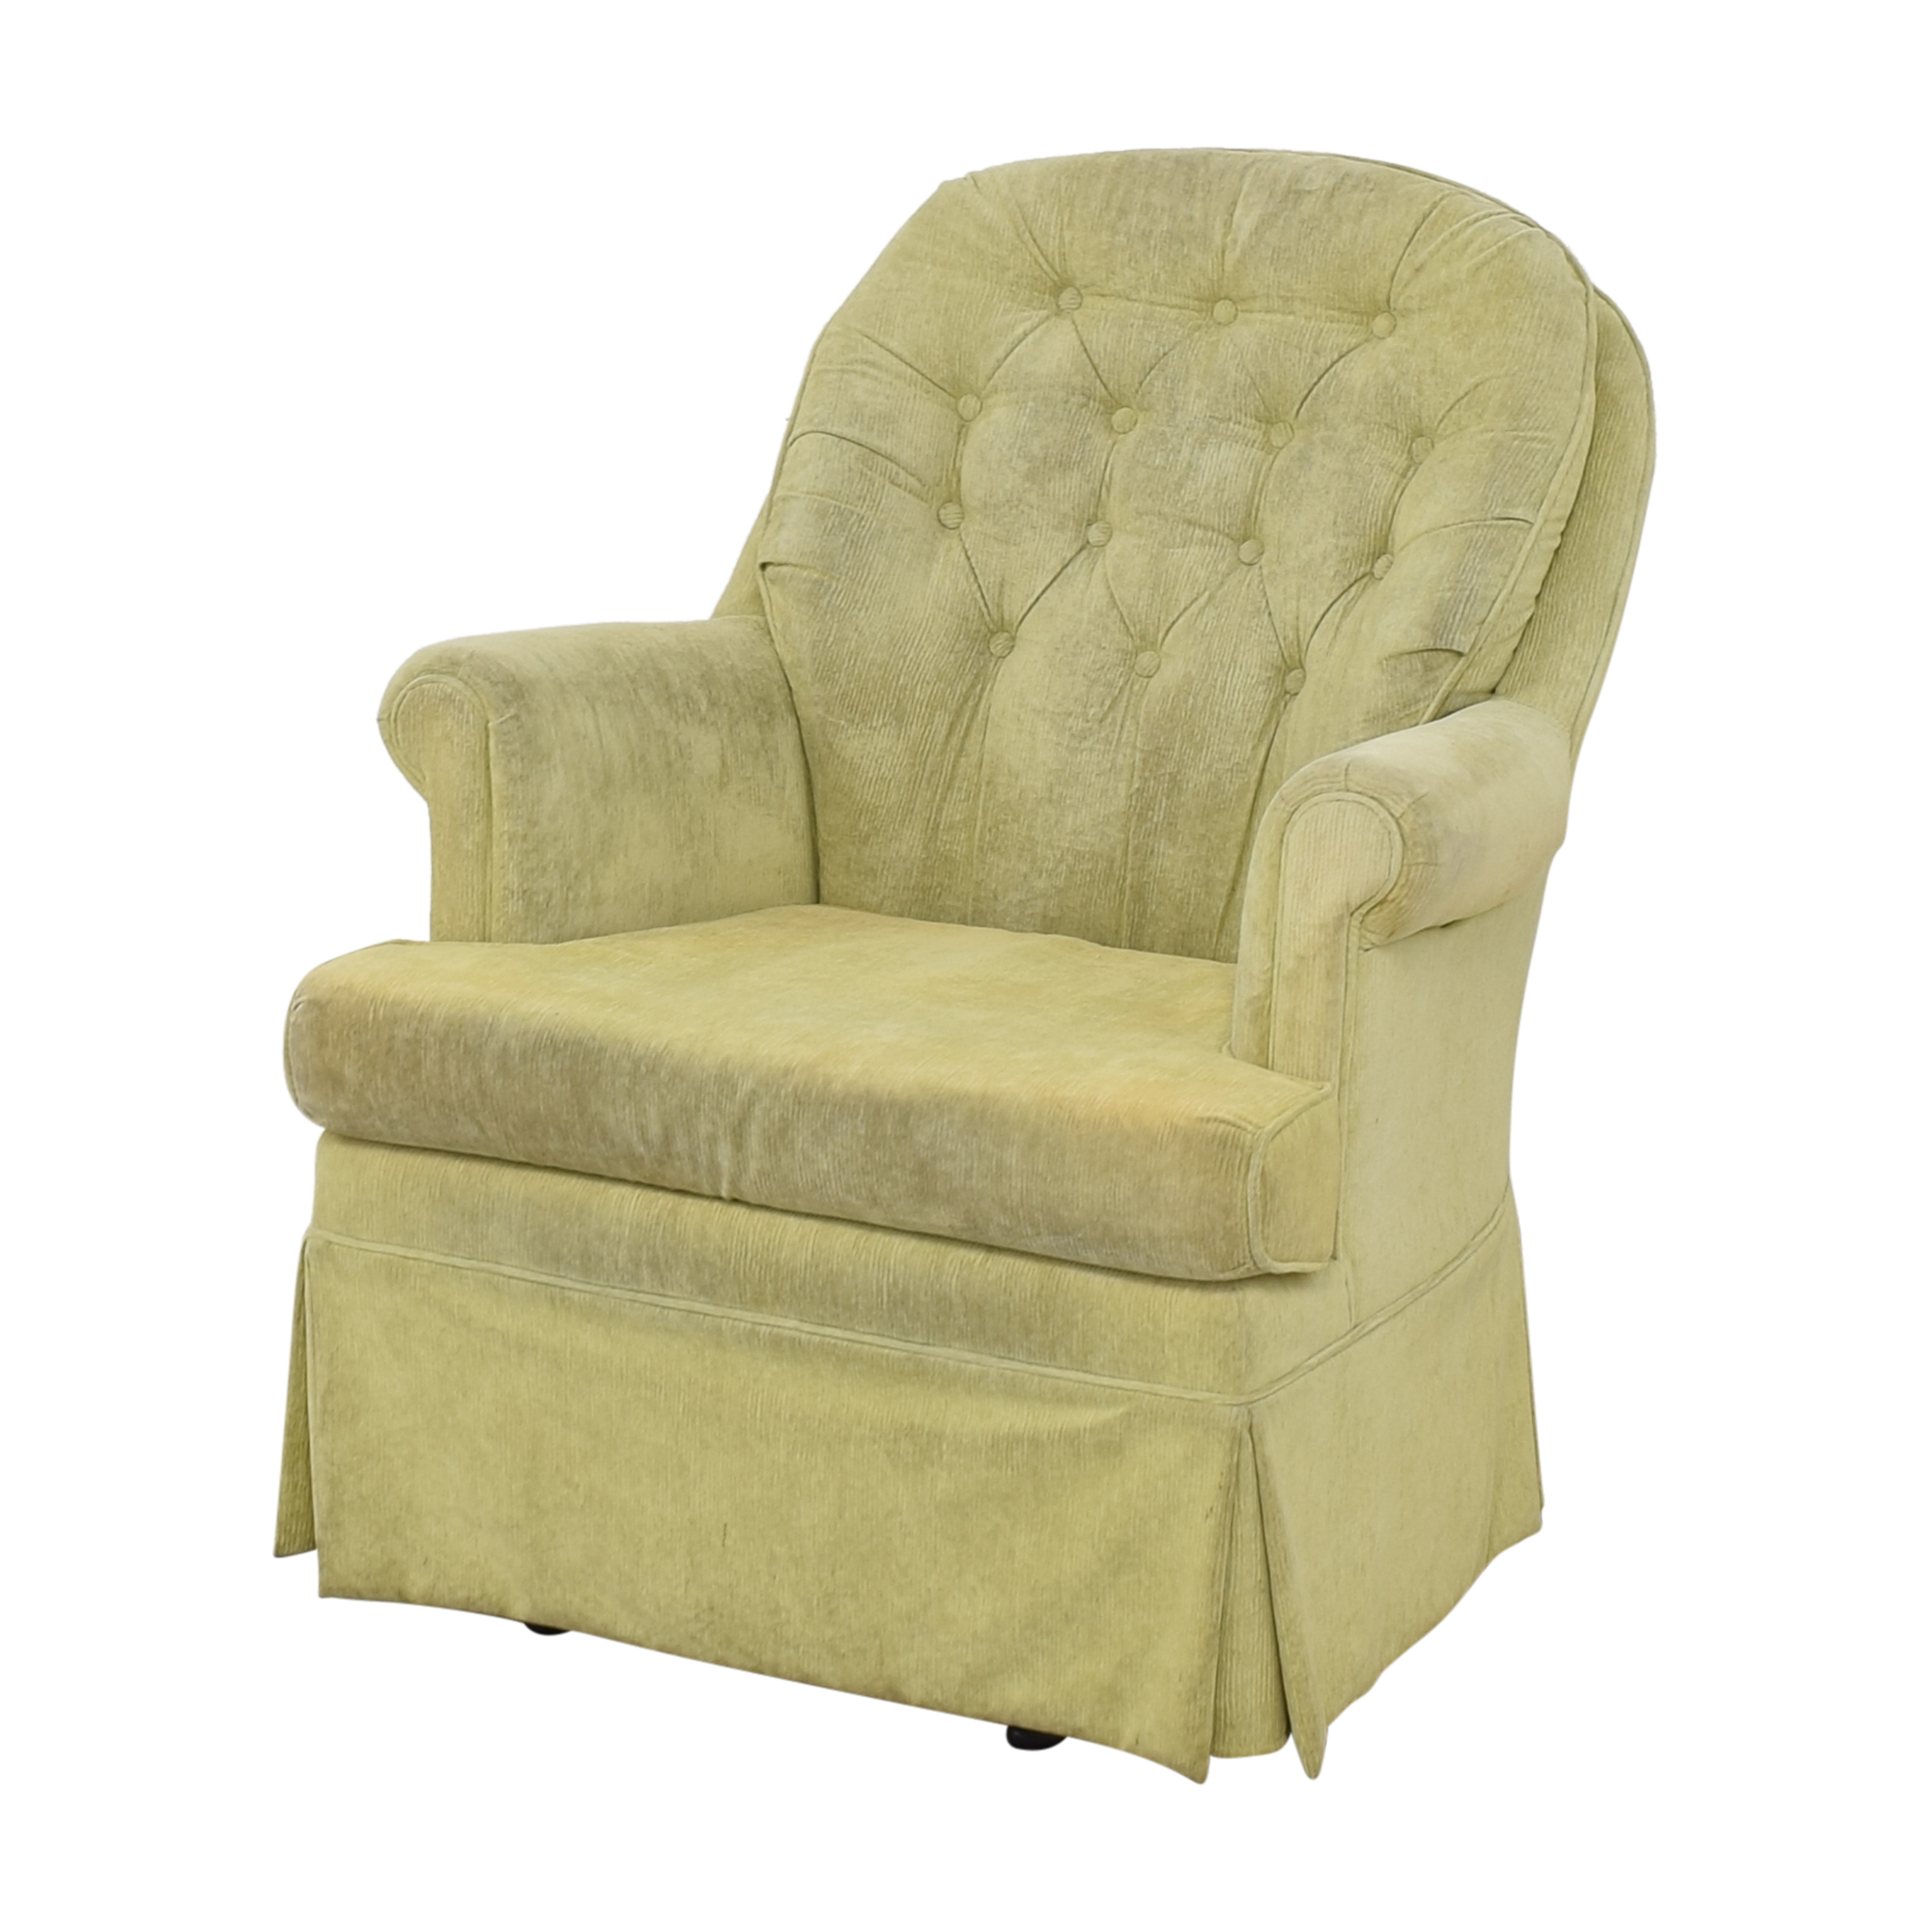 Babyletto Nursery Glider and Gliding Ottoman / Recliners